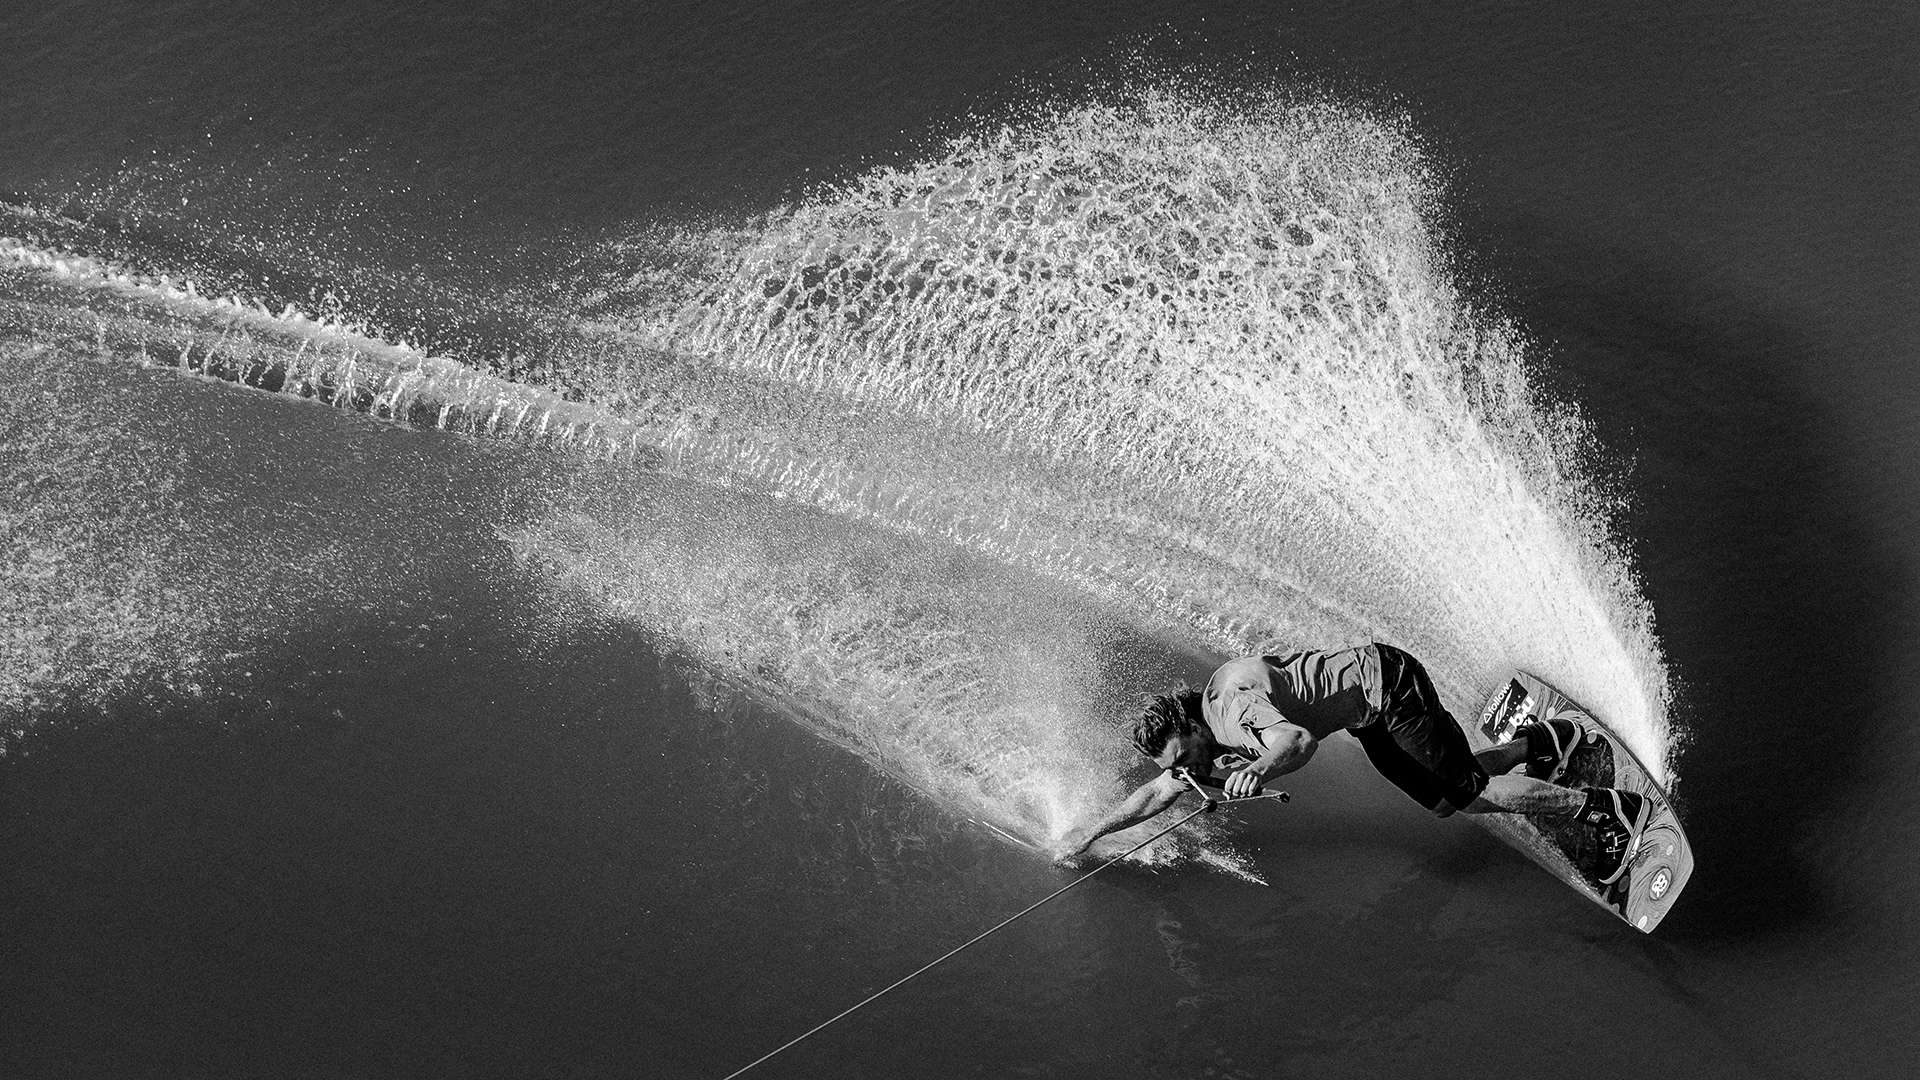 Humanoid Wakeboards Made With Care Ridden Without